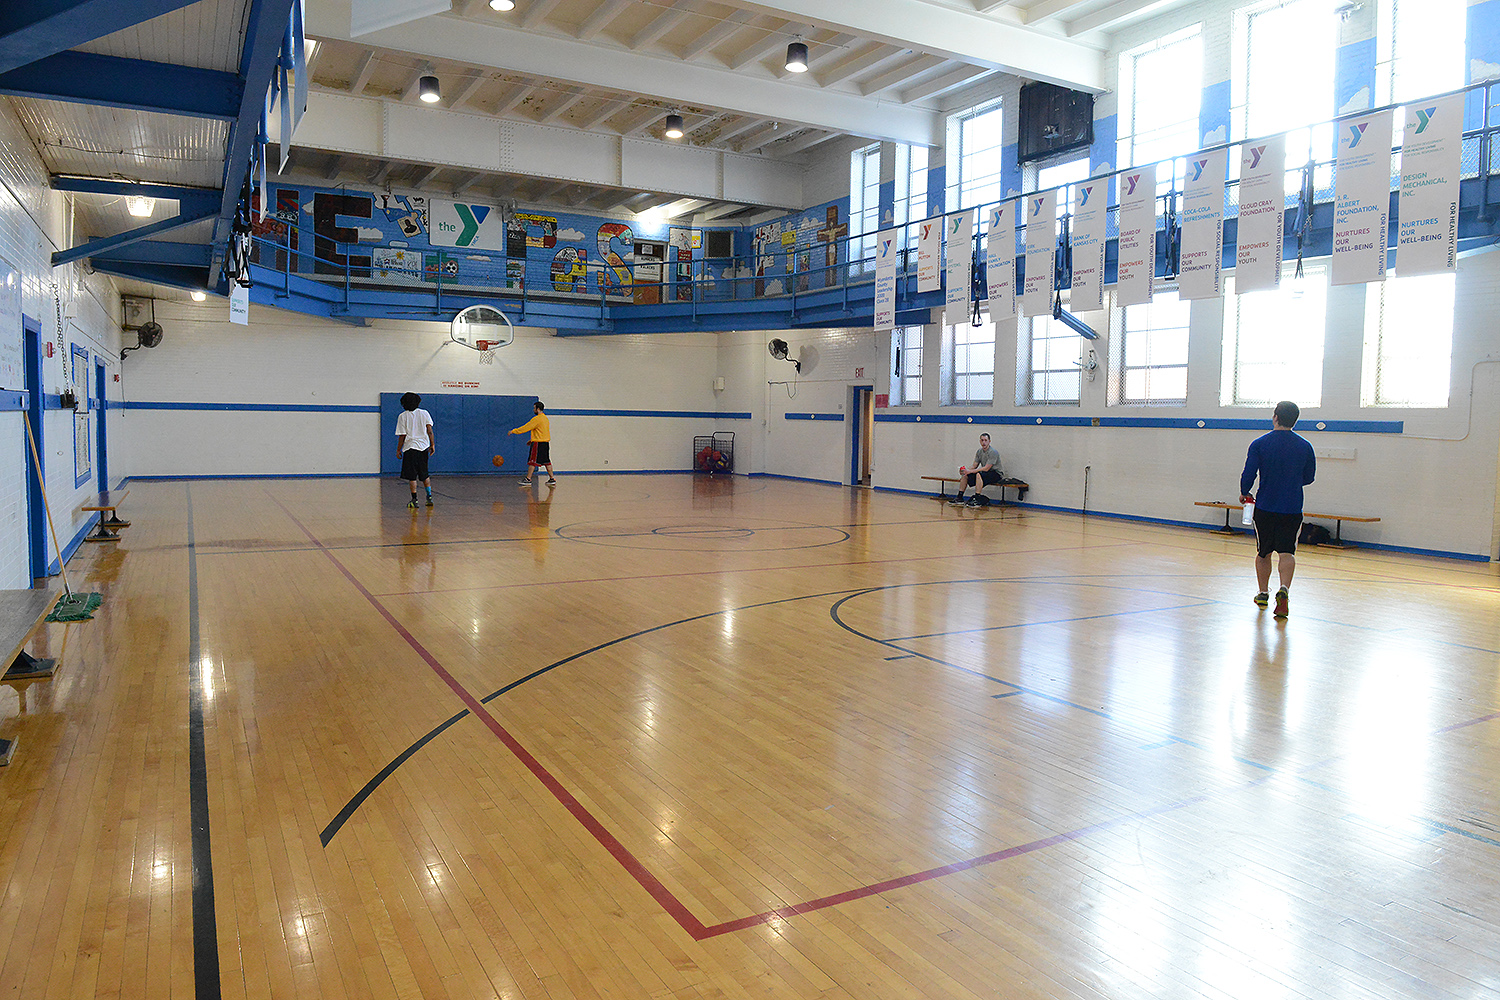 Gym at the 8th Street Family YMCA